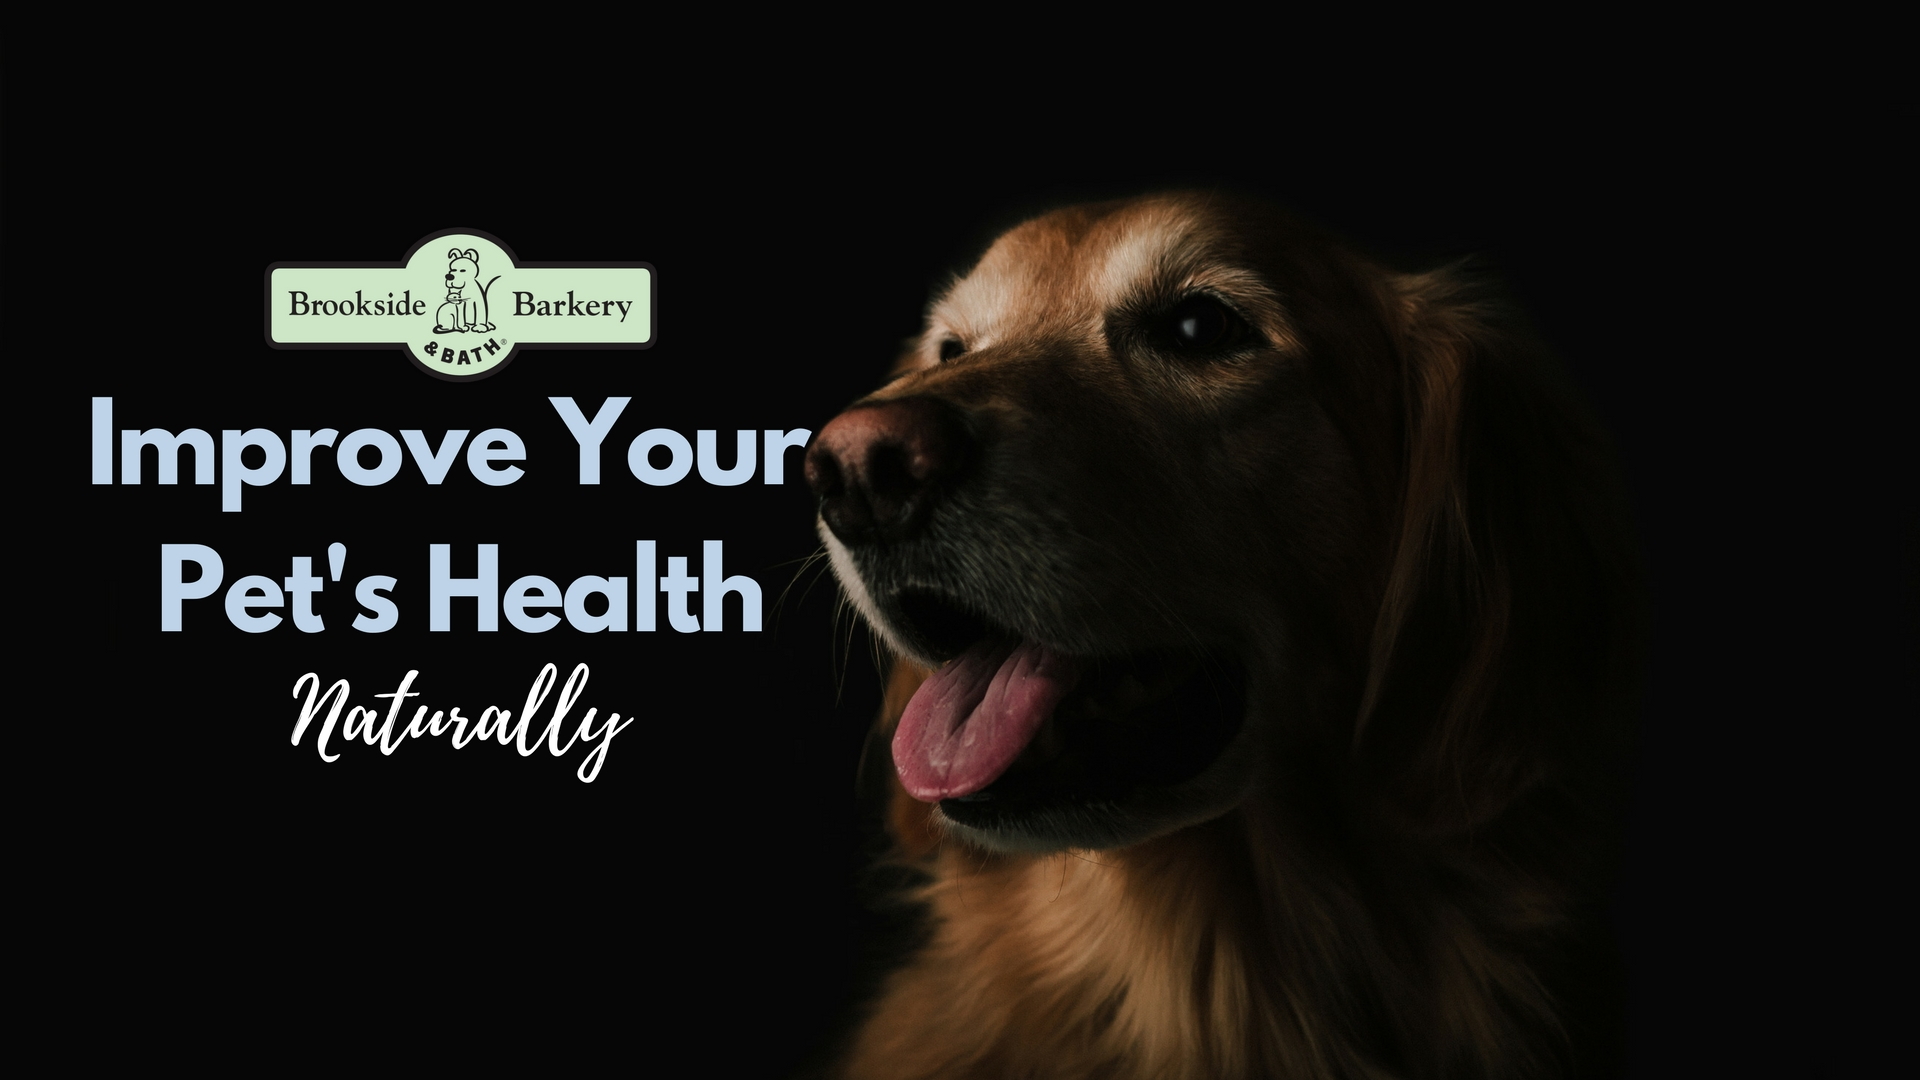 6 Ways to Improve Your Pet's Health Naturally